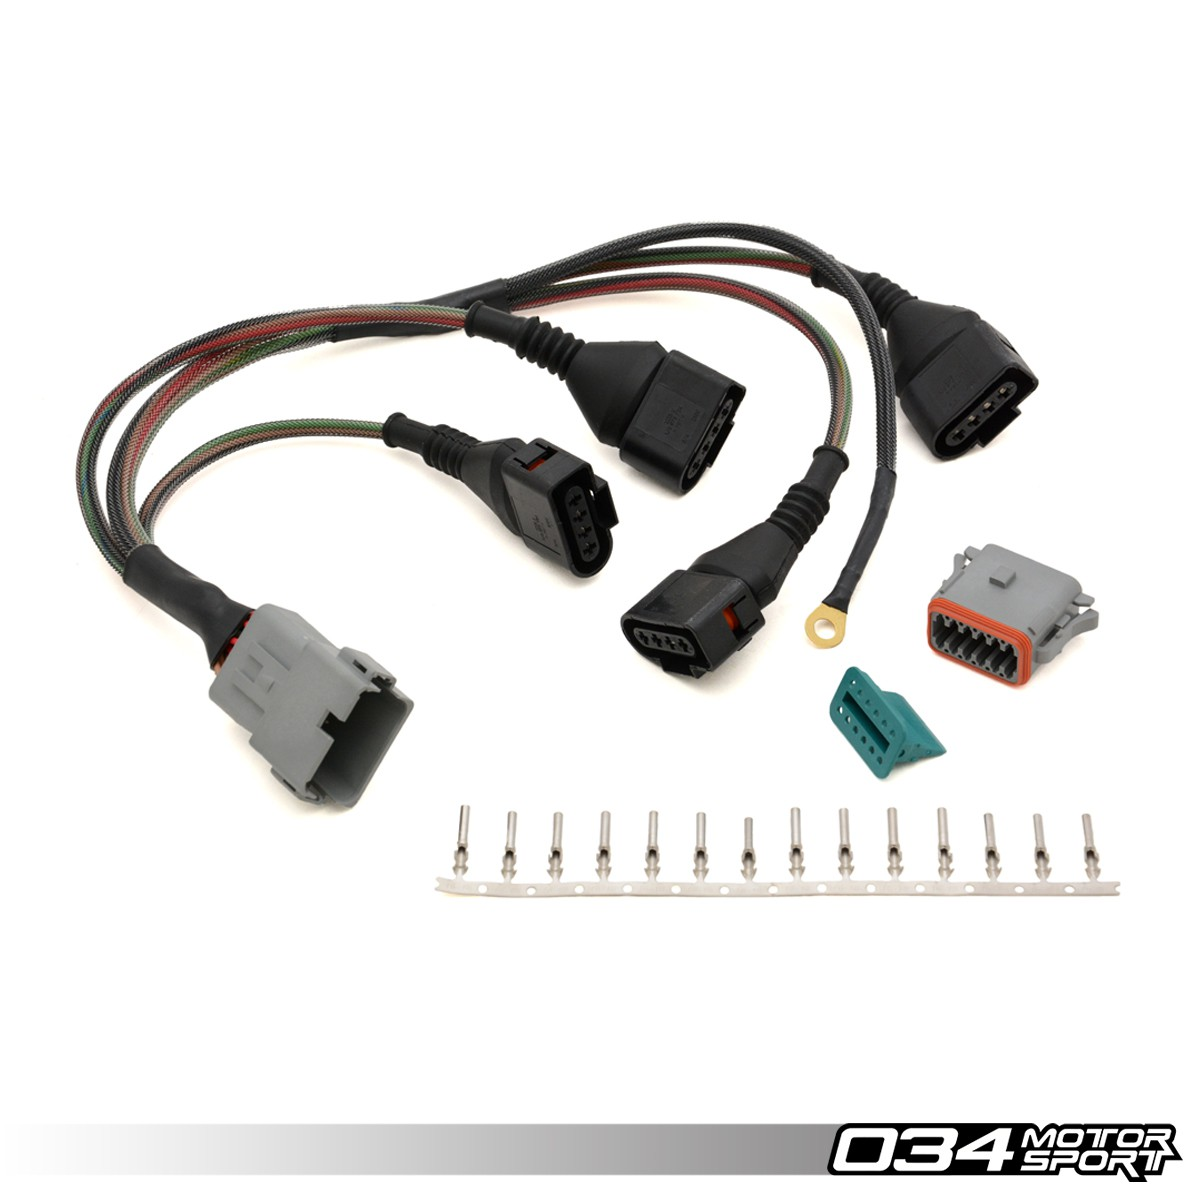 repair update harness audi volkswagen 18t with 4 wire coils 034motorsport 034 701 0004 2 repair update harness, audi volkswagen 1 8t with 4 wire coils  at mifinder.co